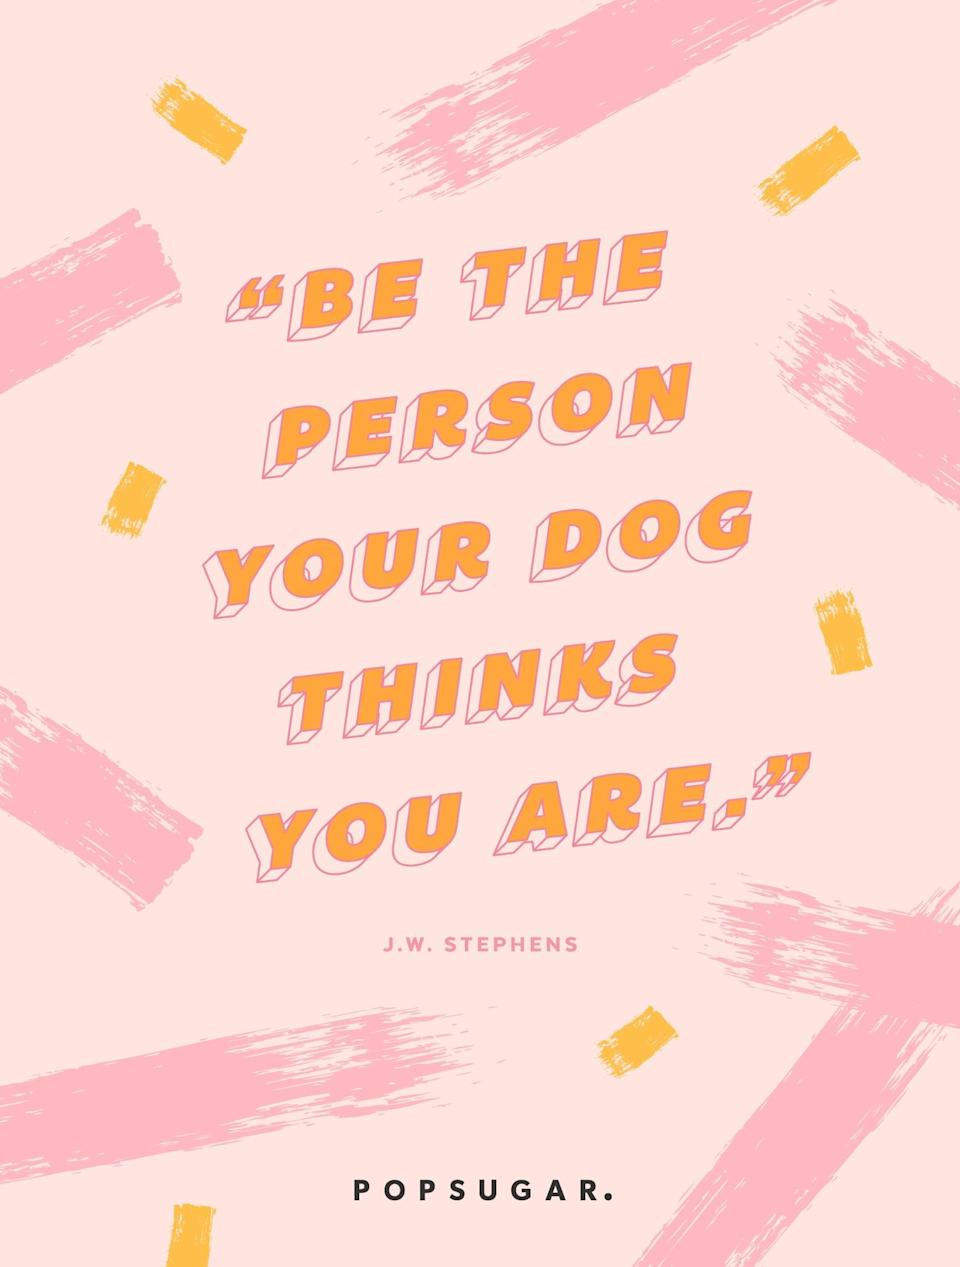 """<p><b>Quote:</b></p> <p>""""Be the person your dog thinks you are.""""</p> <p><strong>Lesson to learn:</strong></p> <p>Your dog thinks the world of you. He thinks of you as someone who deserves love, affection, and loyalty. And he sees you for who you are and loves you unconditionally. See yourself through your dog's eyes. Try to be what he thinks you are to the rest of the world - imagine what the difference you can make to the world.</p>"""